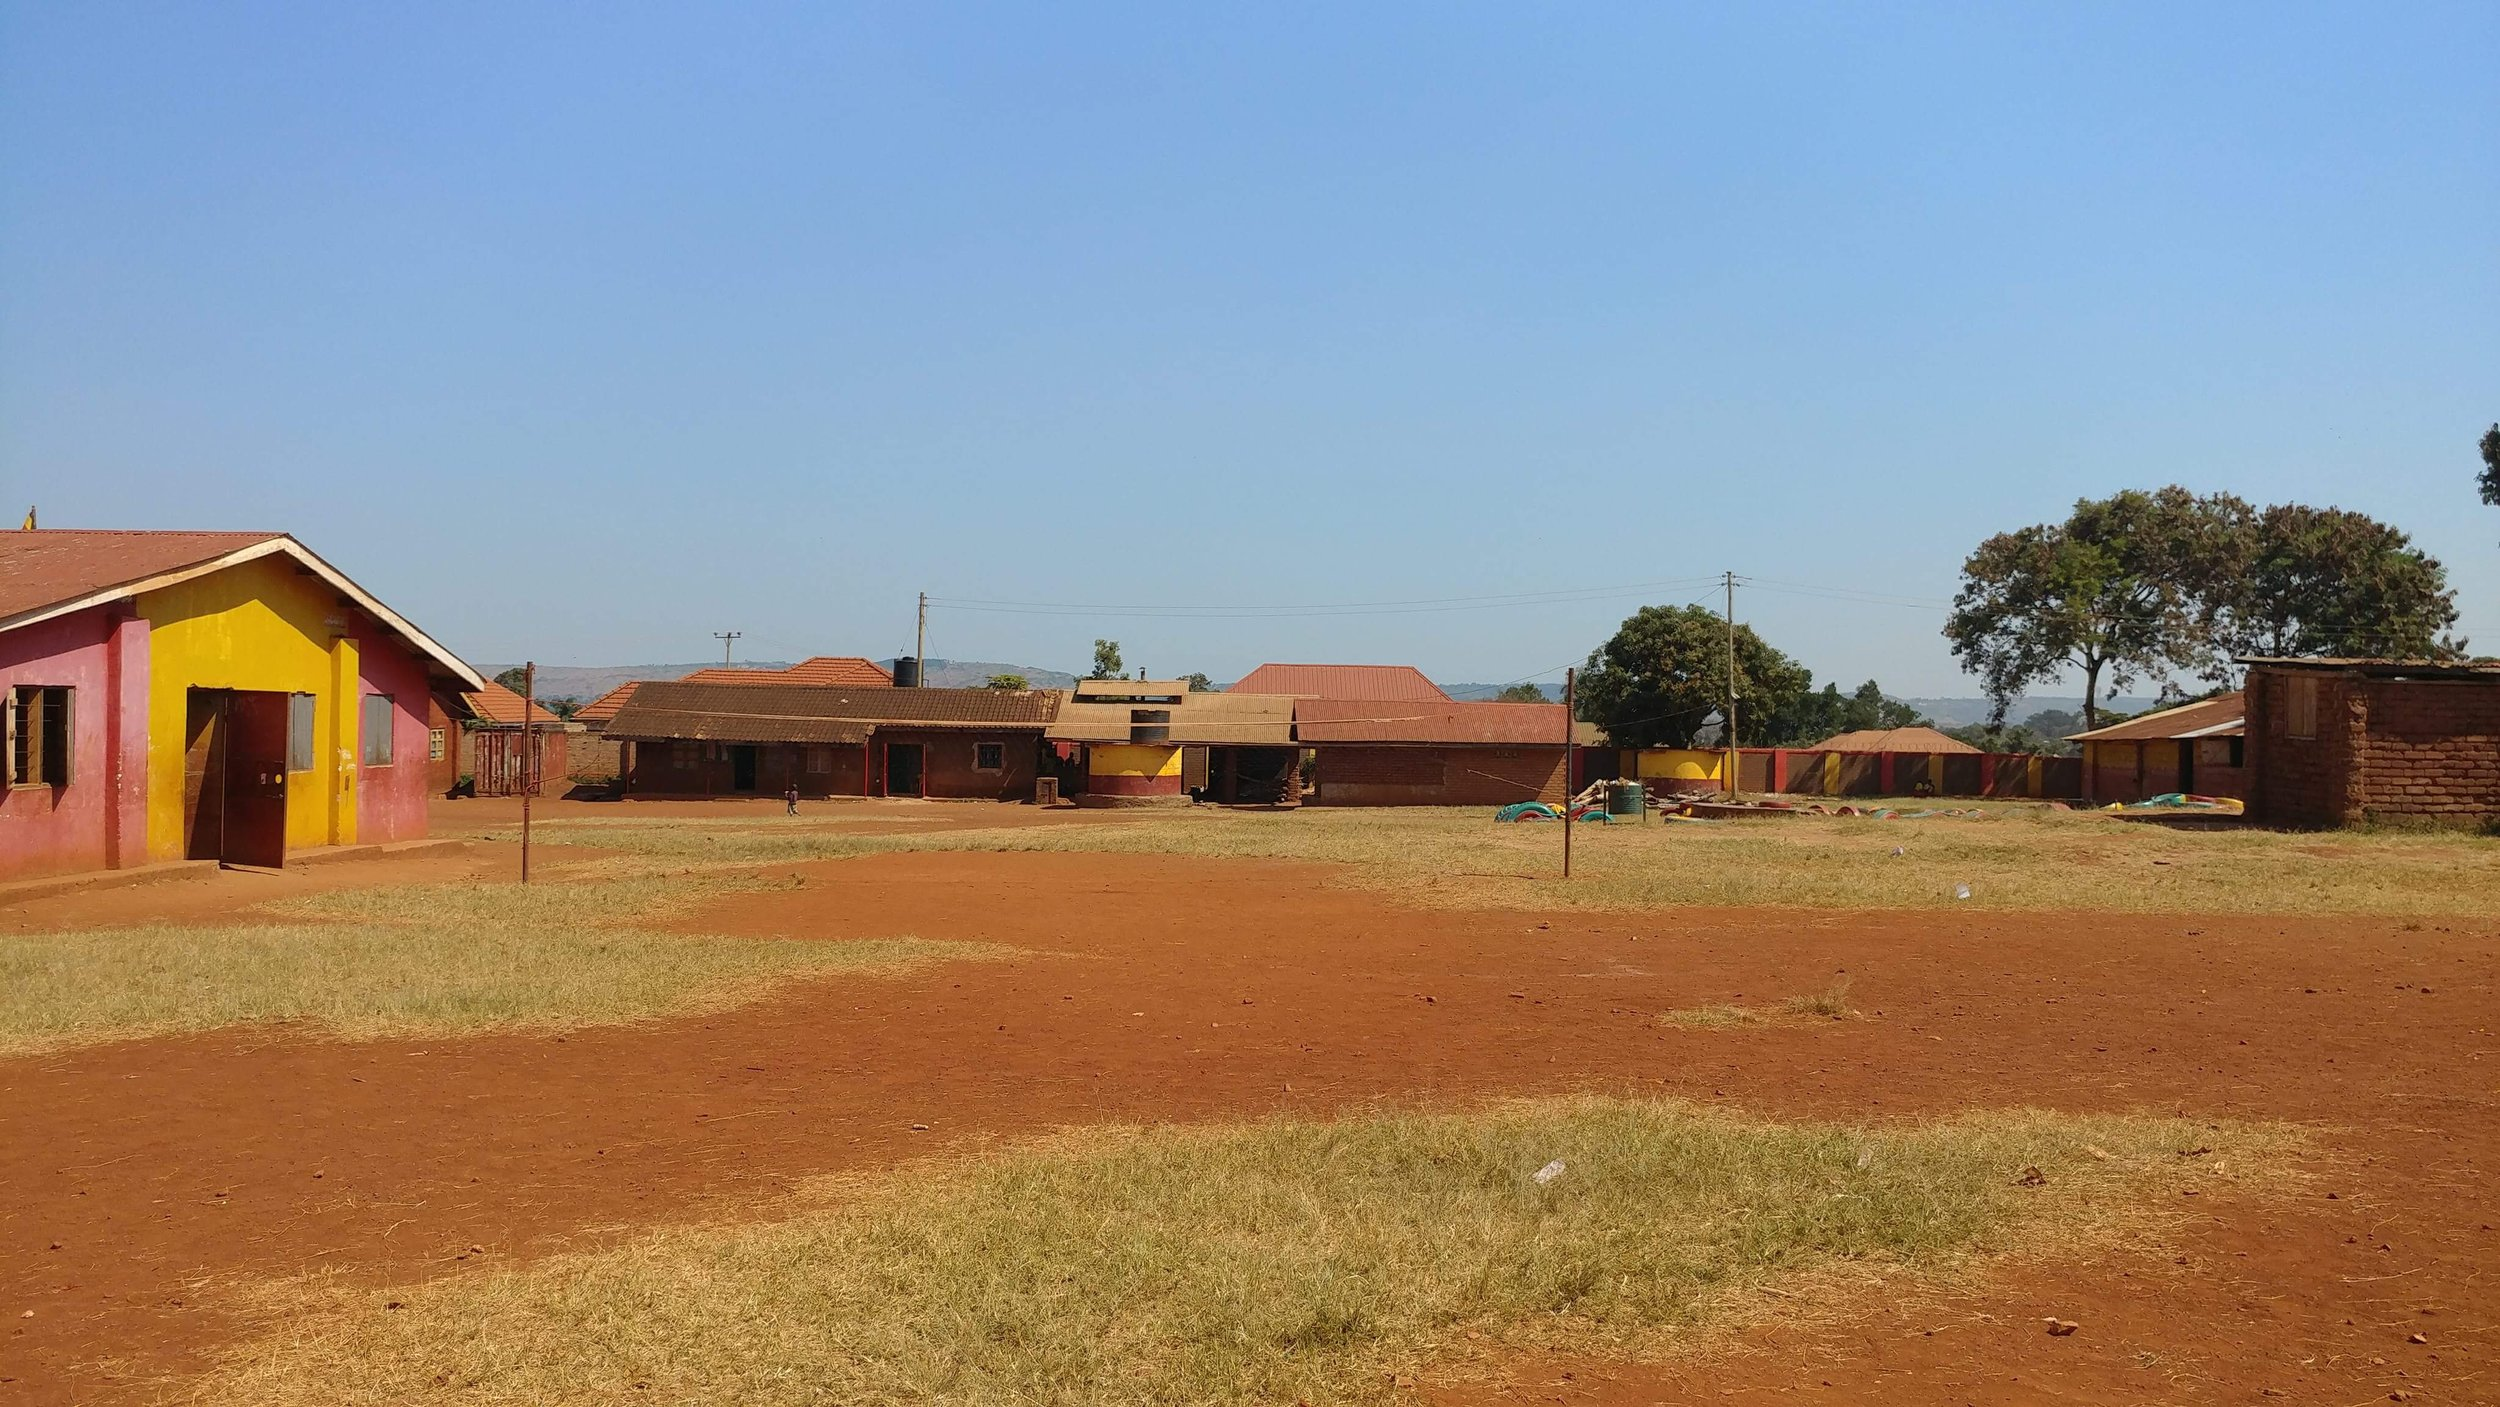 H.E.L.P International Primary School in Masese Uganda